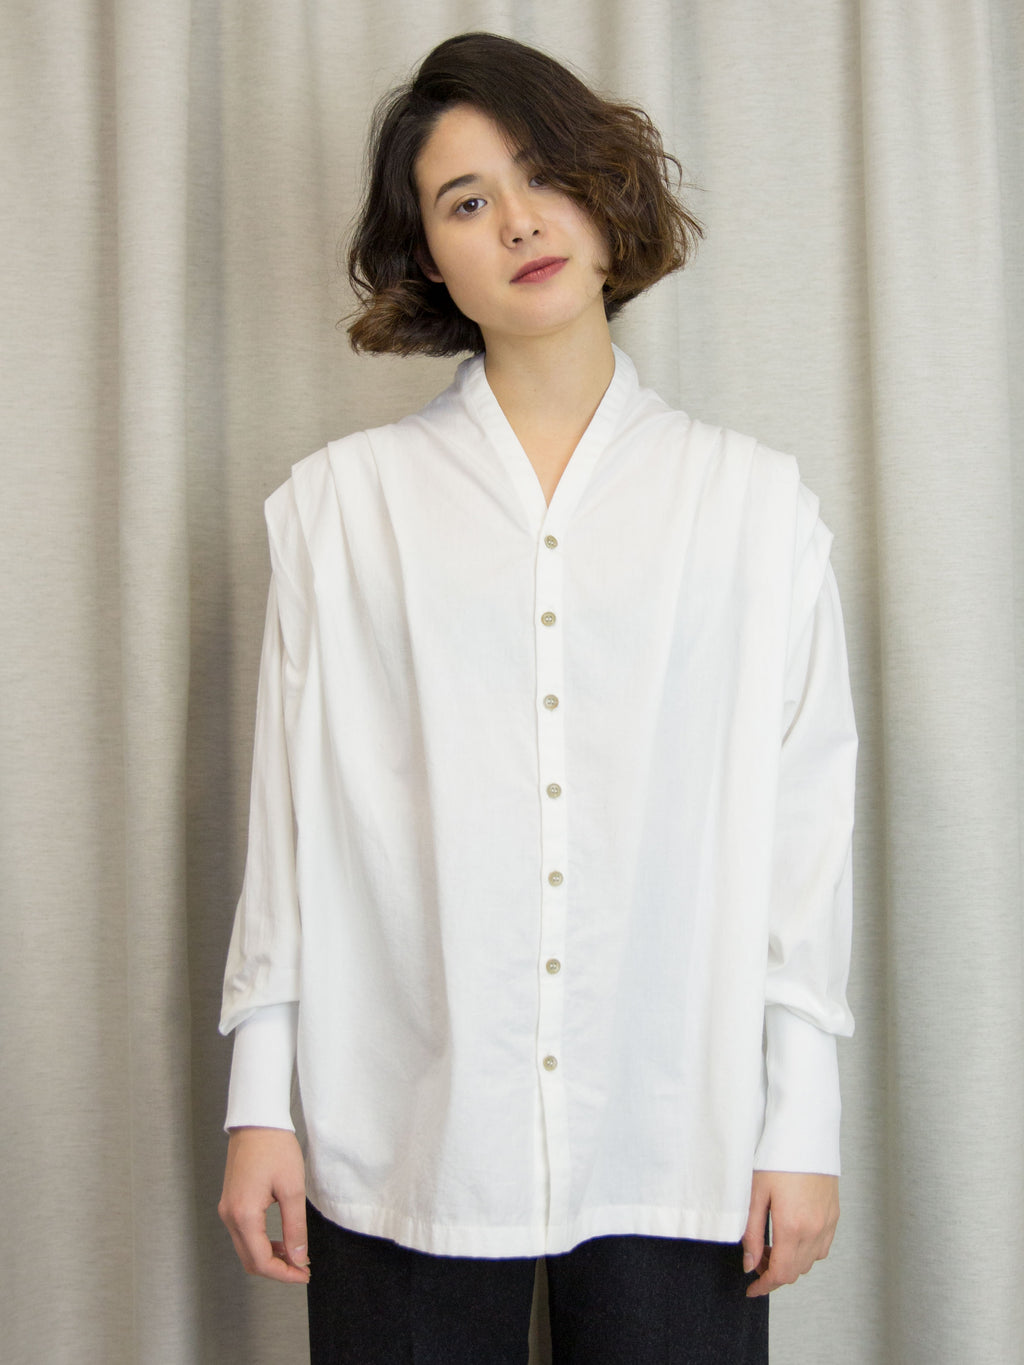 NEHERA Bana Pure Japanese Cotton Shirt